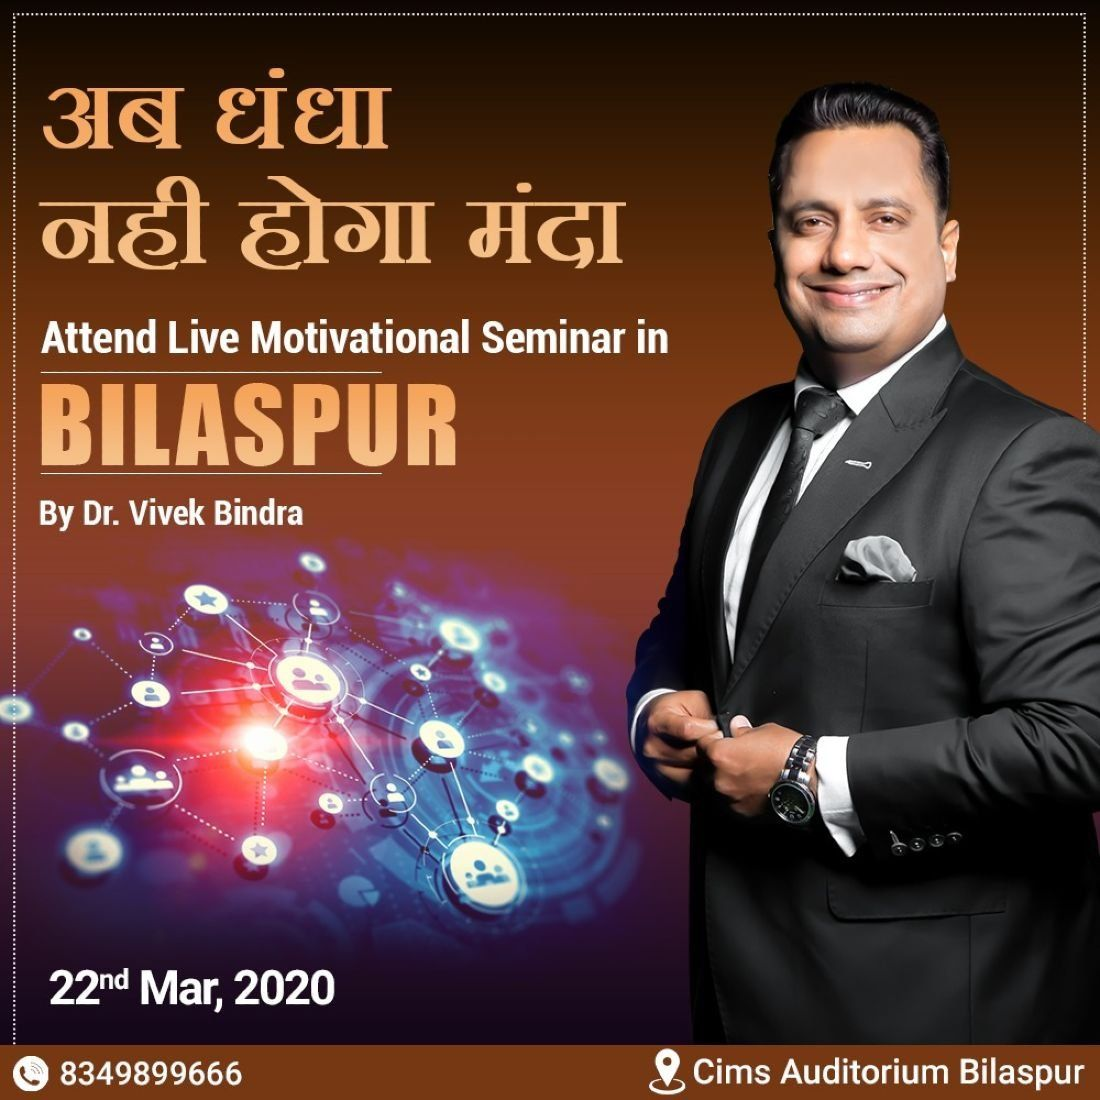 BOUNCE BACK Bilaspur 2.0 by Dr. Vivek Bindra